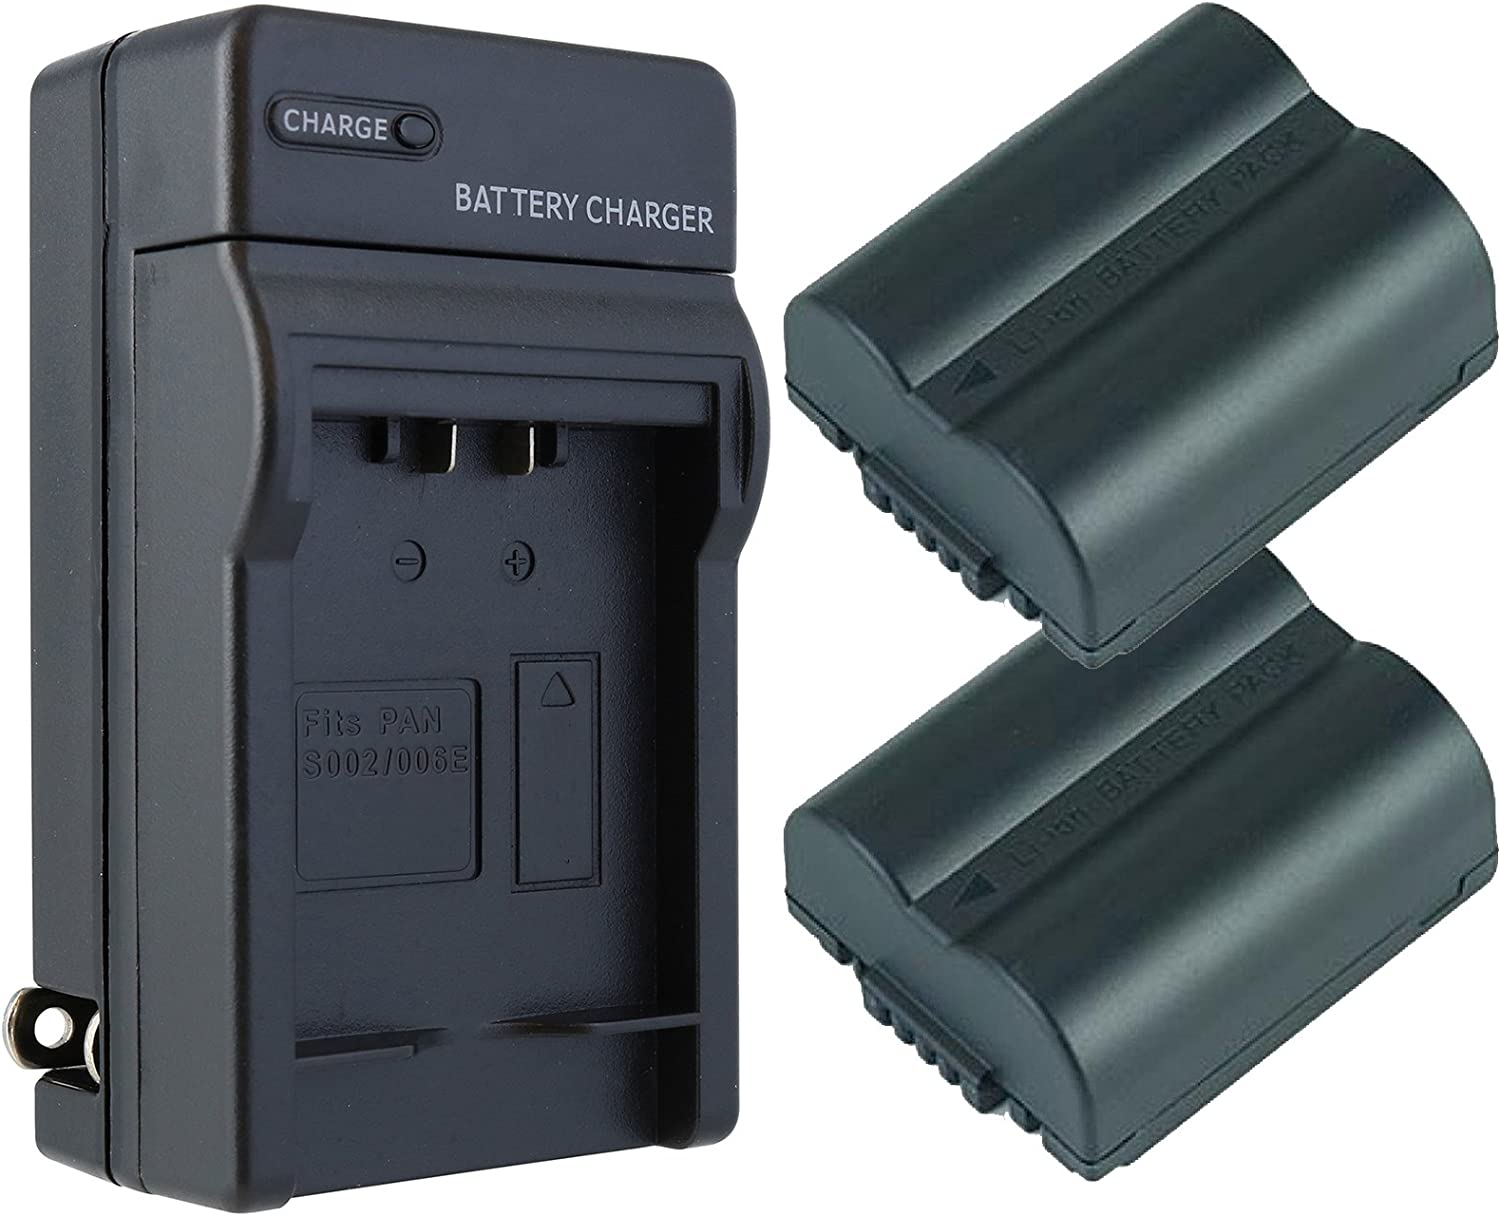 Replacement Battery (2-Pack) & Charger Set for Leica V-Lux 1 Digital Camera (1200mAh, 7.4V, Li-Ion)